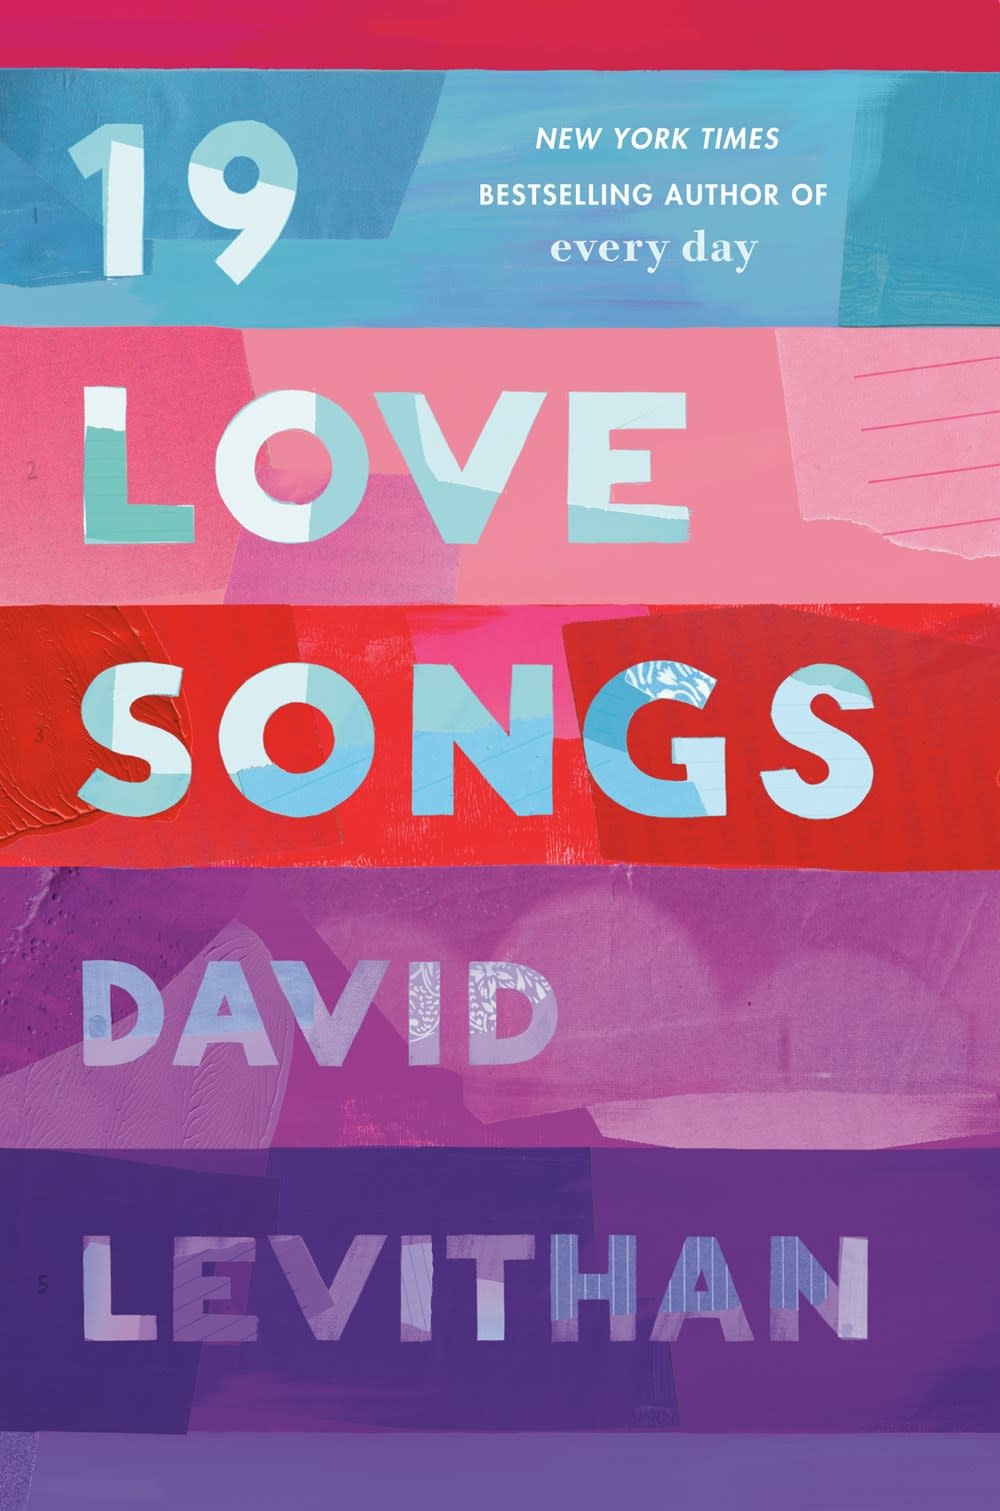 Knopf Books for Young Readers 19 Love Songs